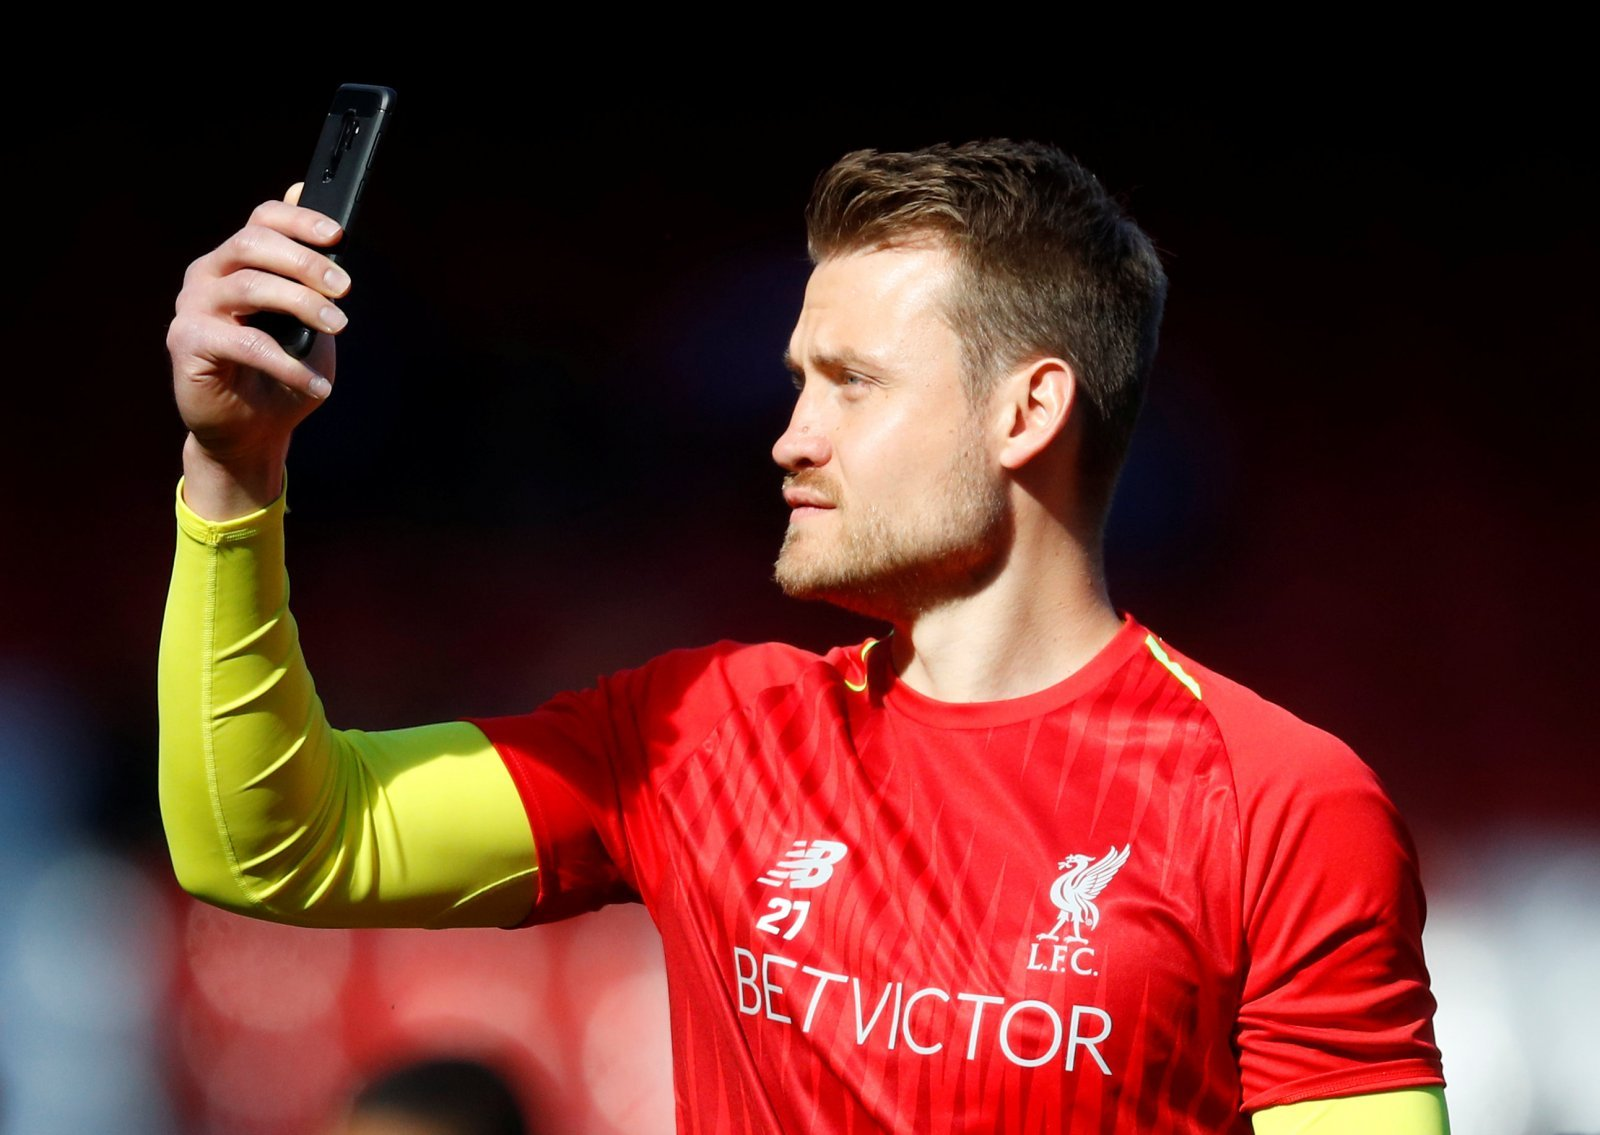 Sell him now: 80% of polled Liverpool fans would rather keep Karius over 21-cap international